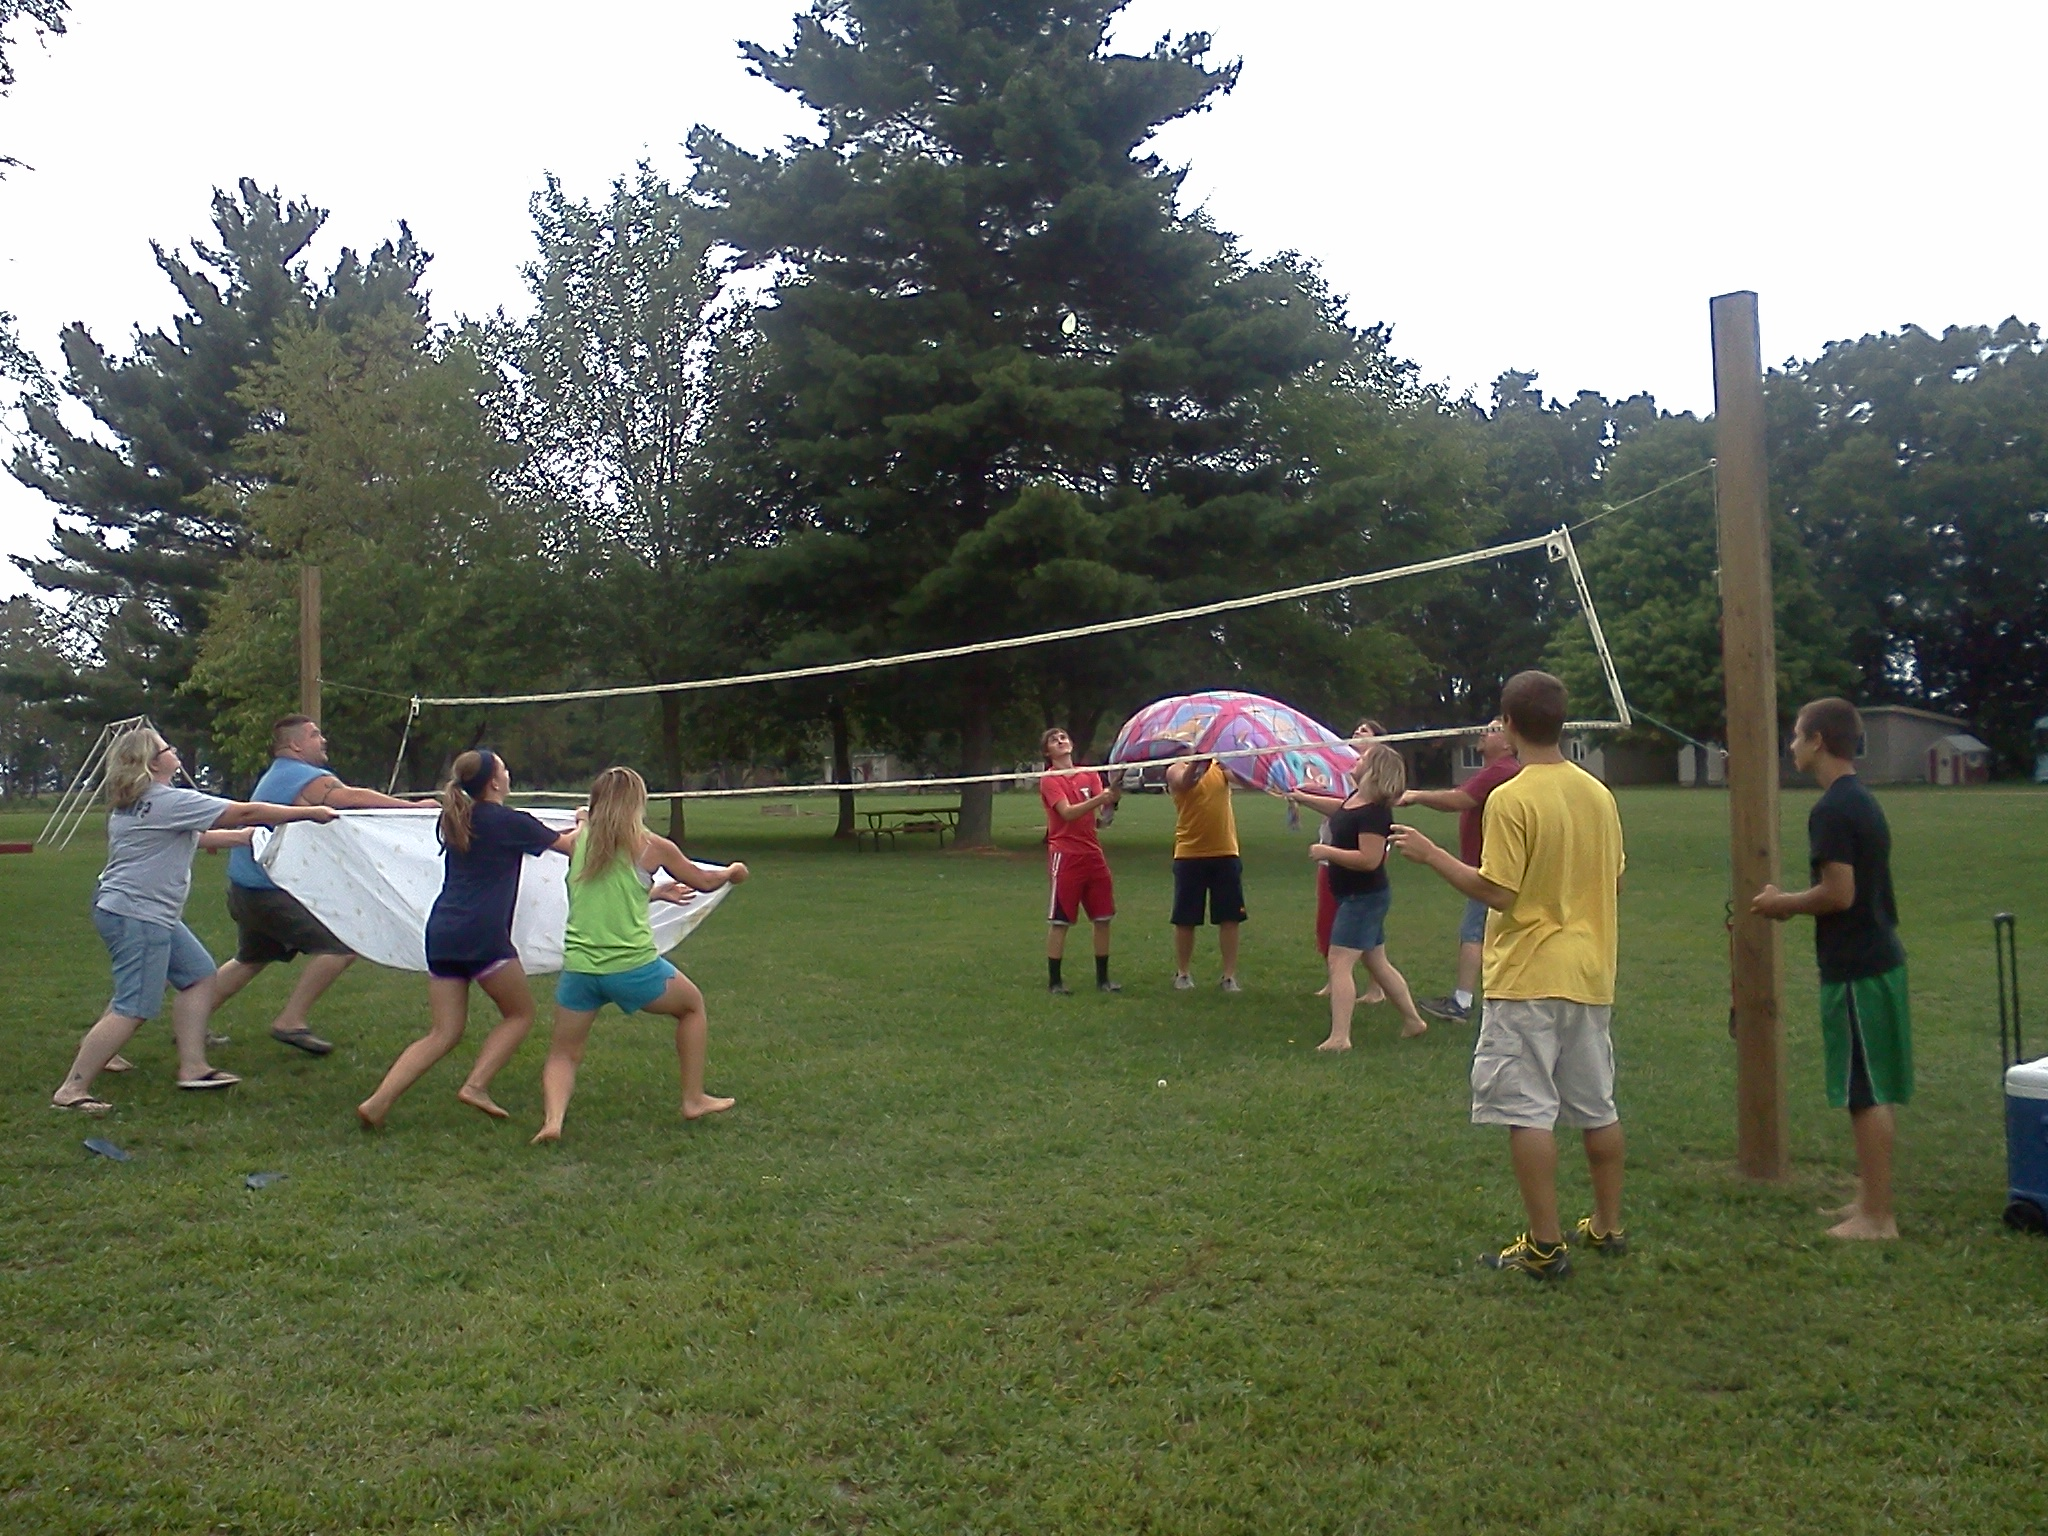 Waterballoon Volleyball